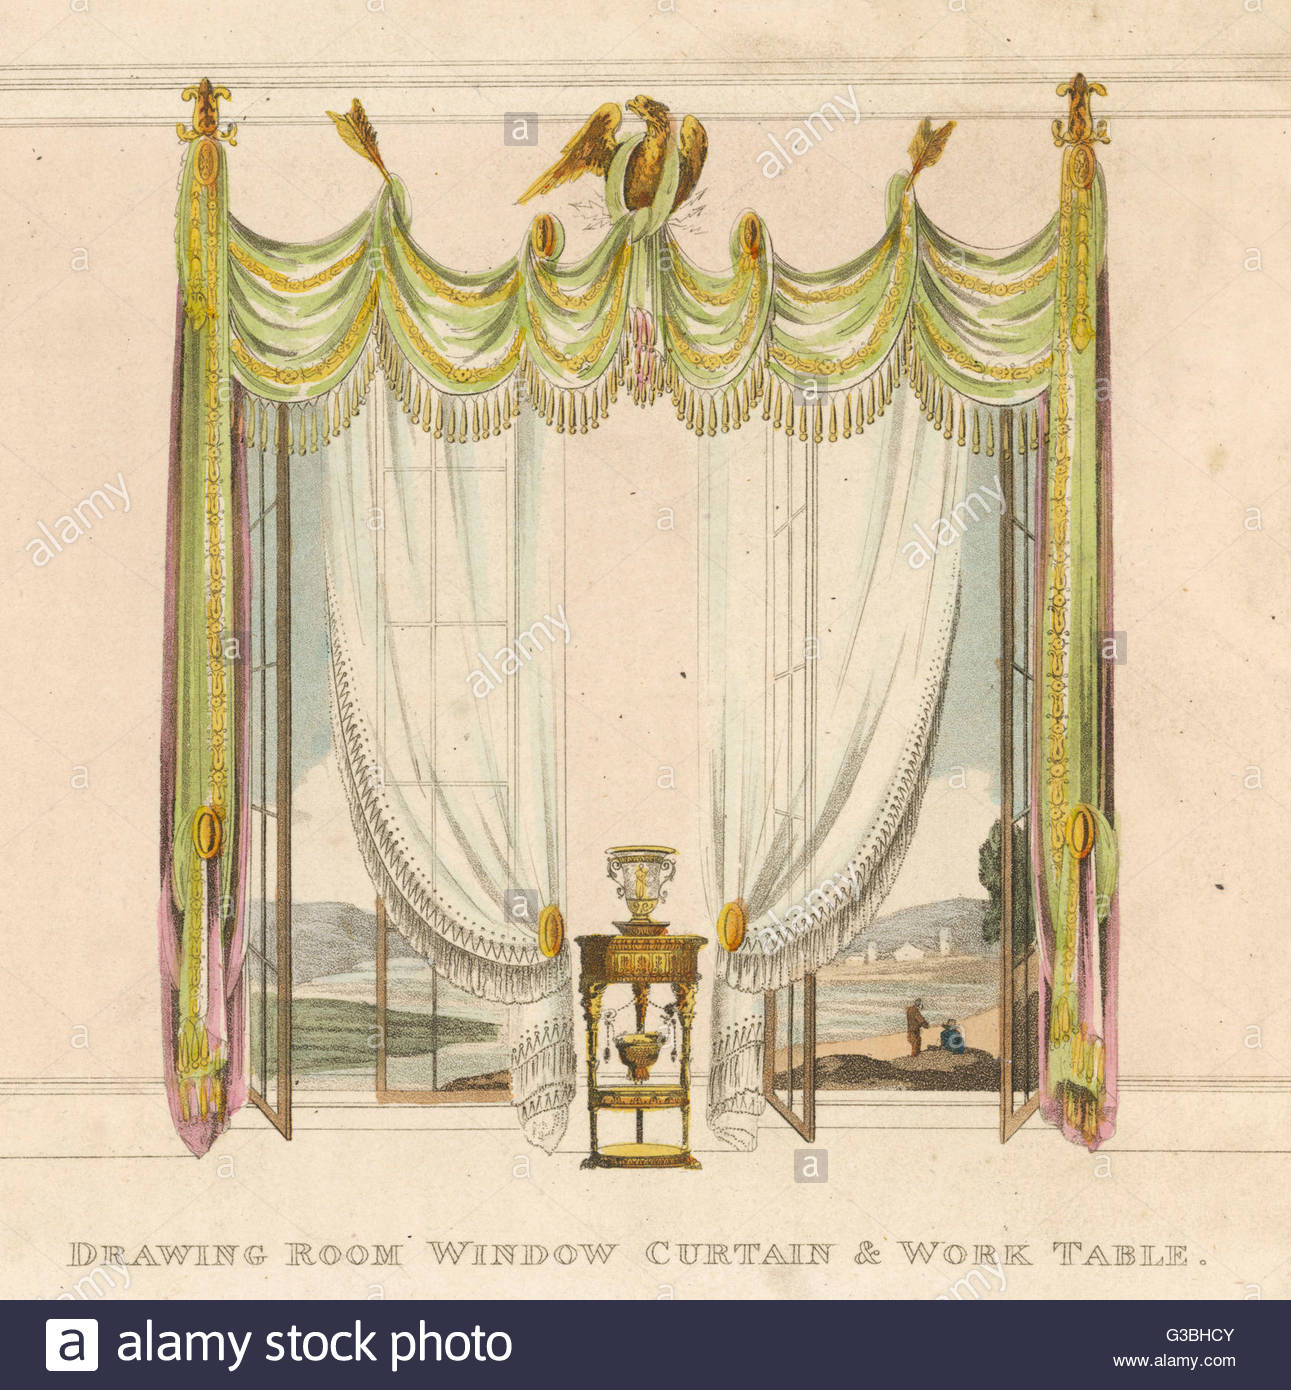 1291x1390 Drawing Room Window Curtains In The Classical Style, With Bird